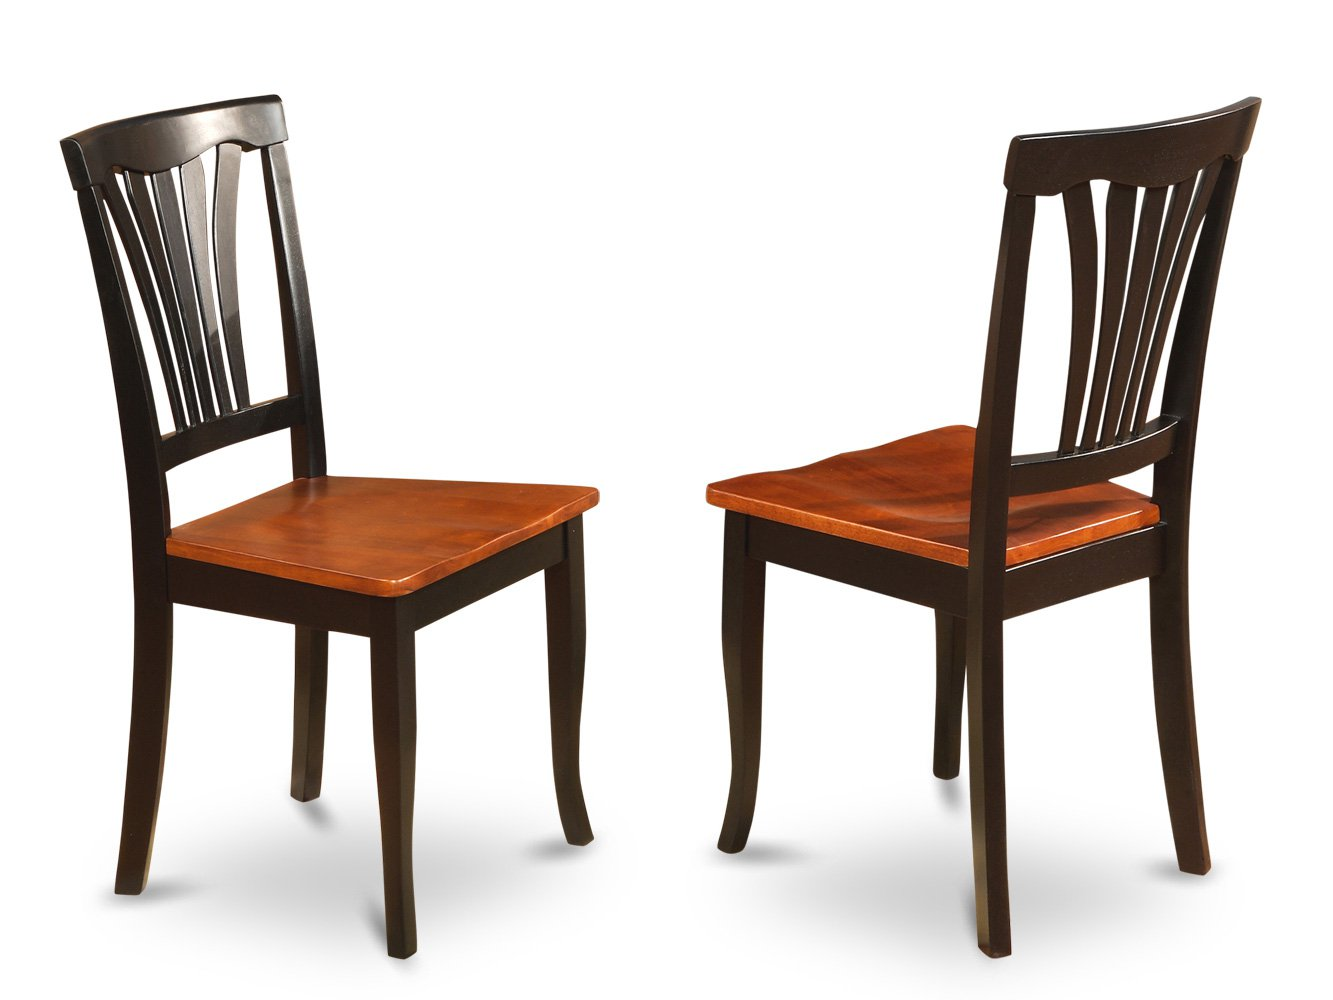 Set of 2 Avon dining room chairs with microfiber upholstered or wood seat in Black finish.